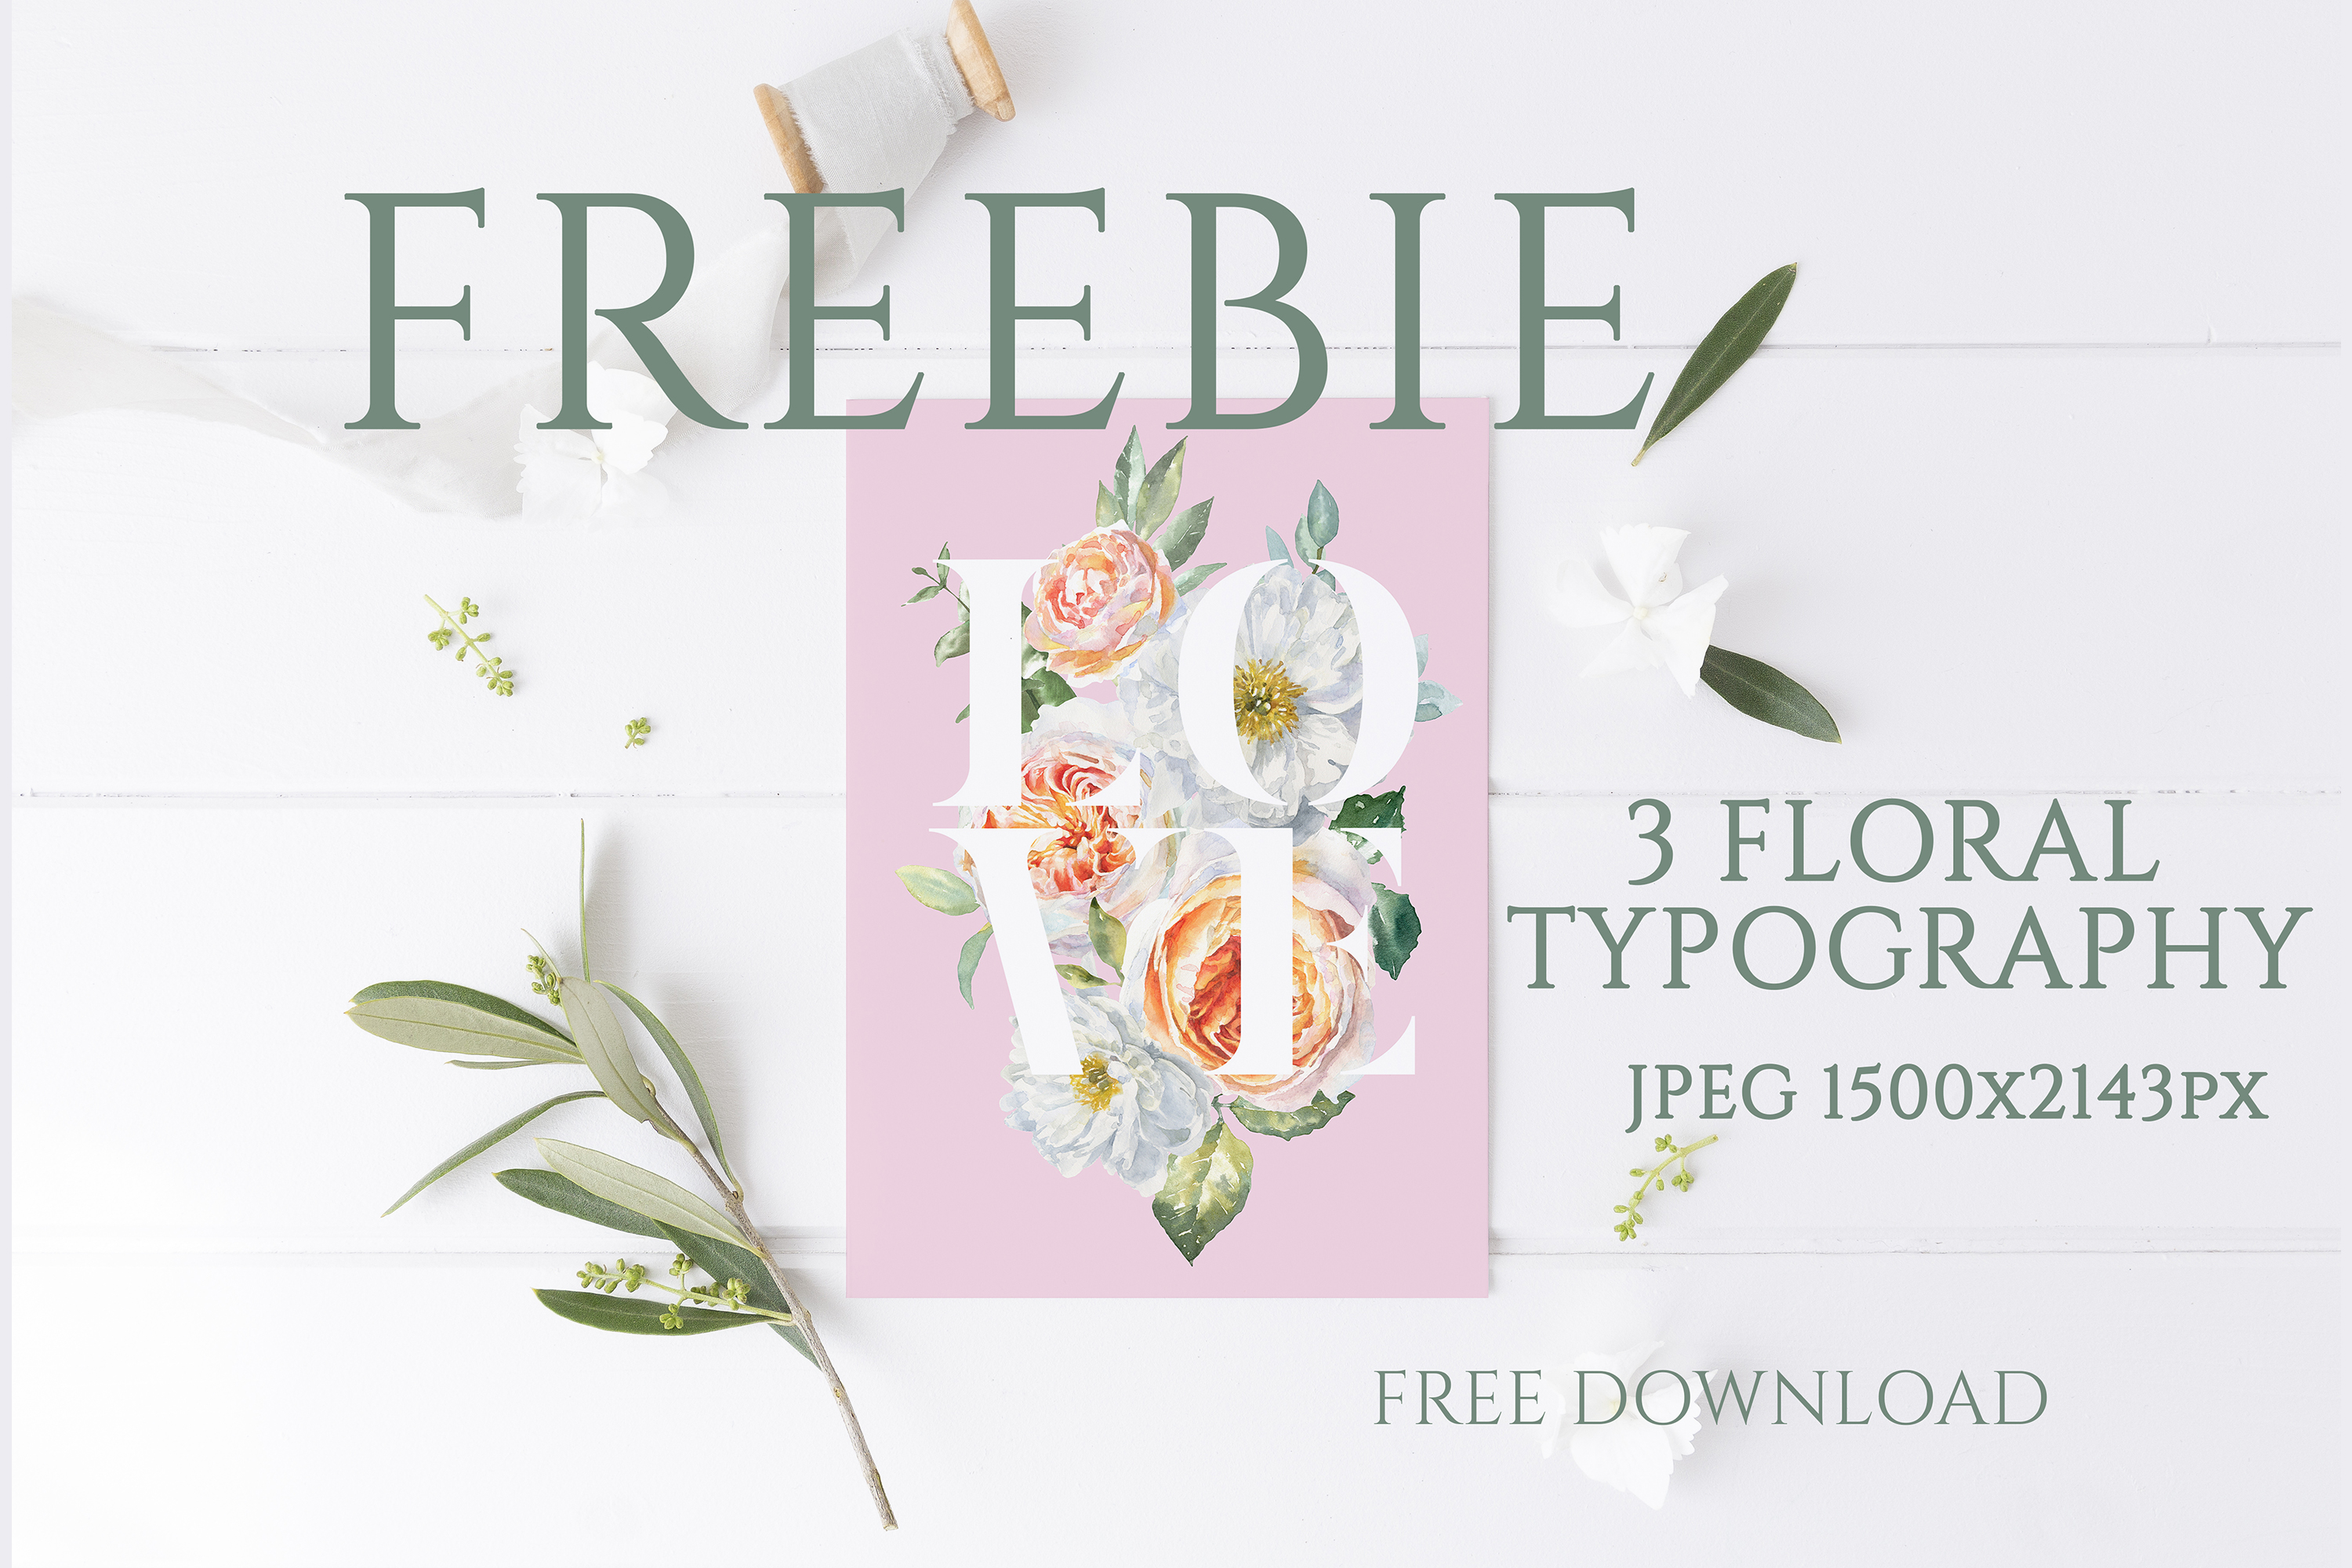 FREEBIE Floral Typography Free Botanical graphics example image 1